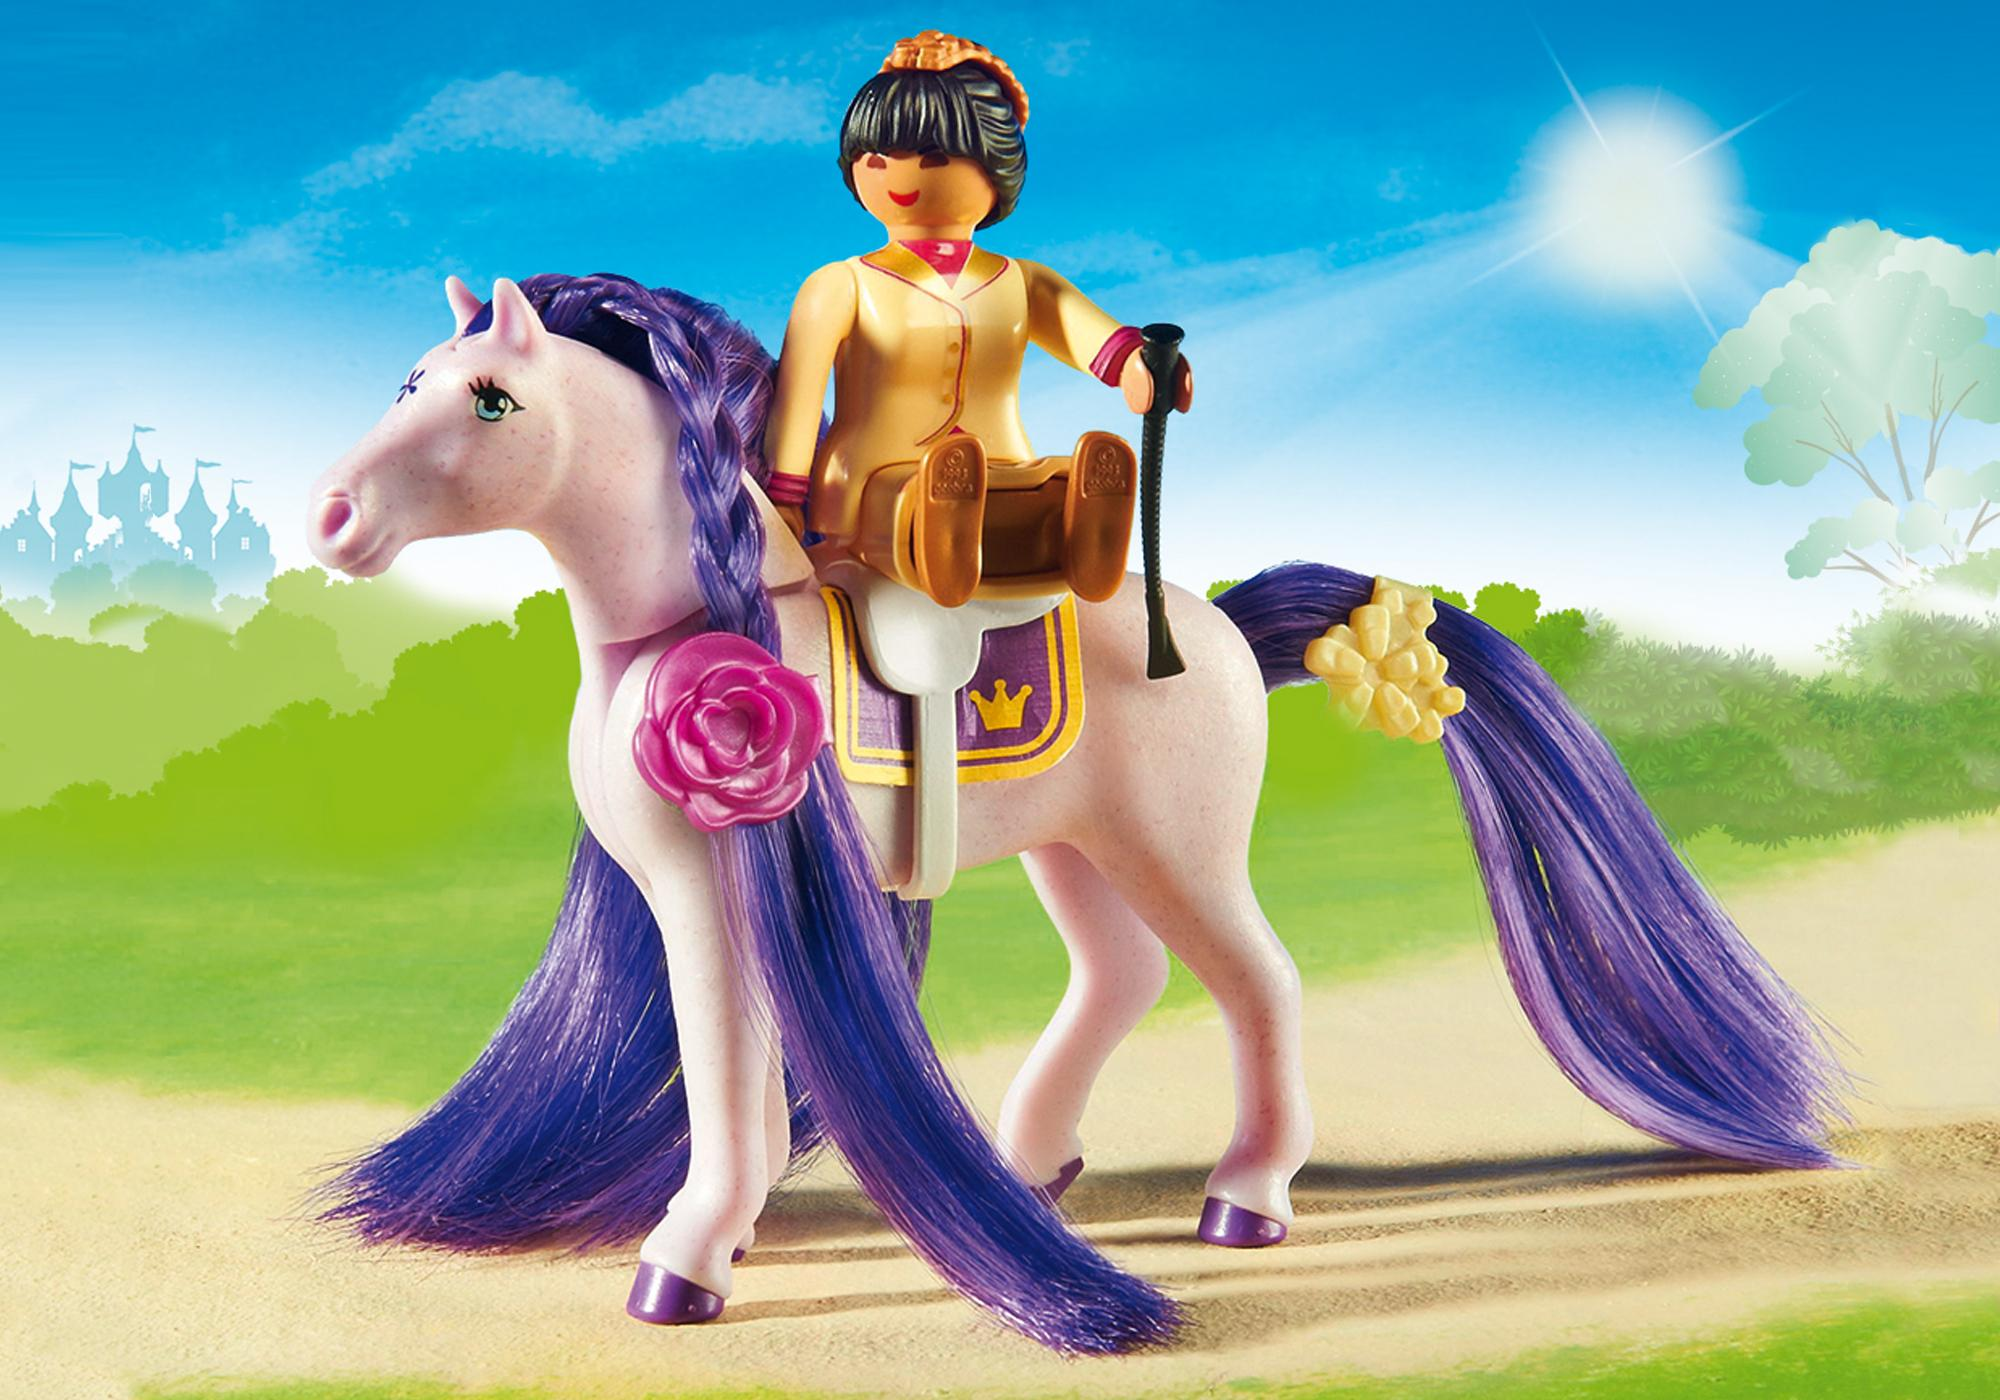 http://media.playmobil.com/i/playmobil/6855_product_extra1/Establo del Caballo Real